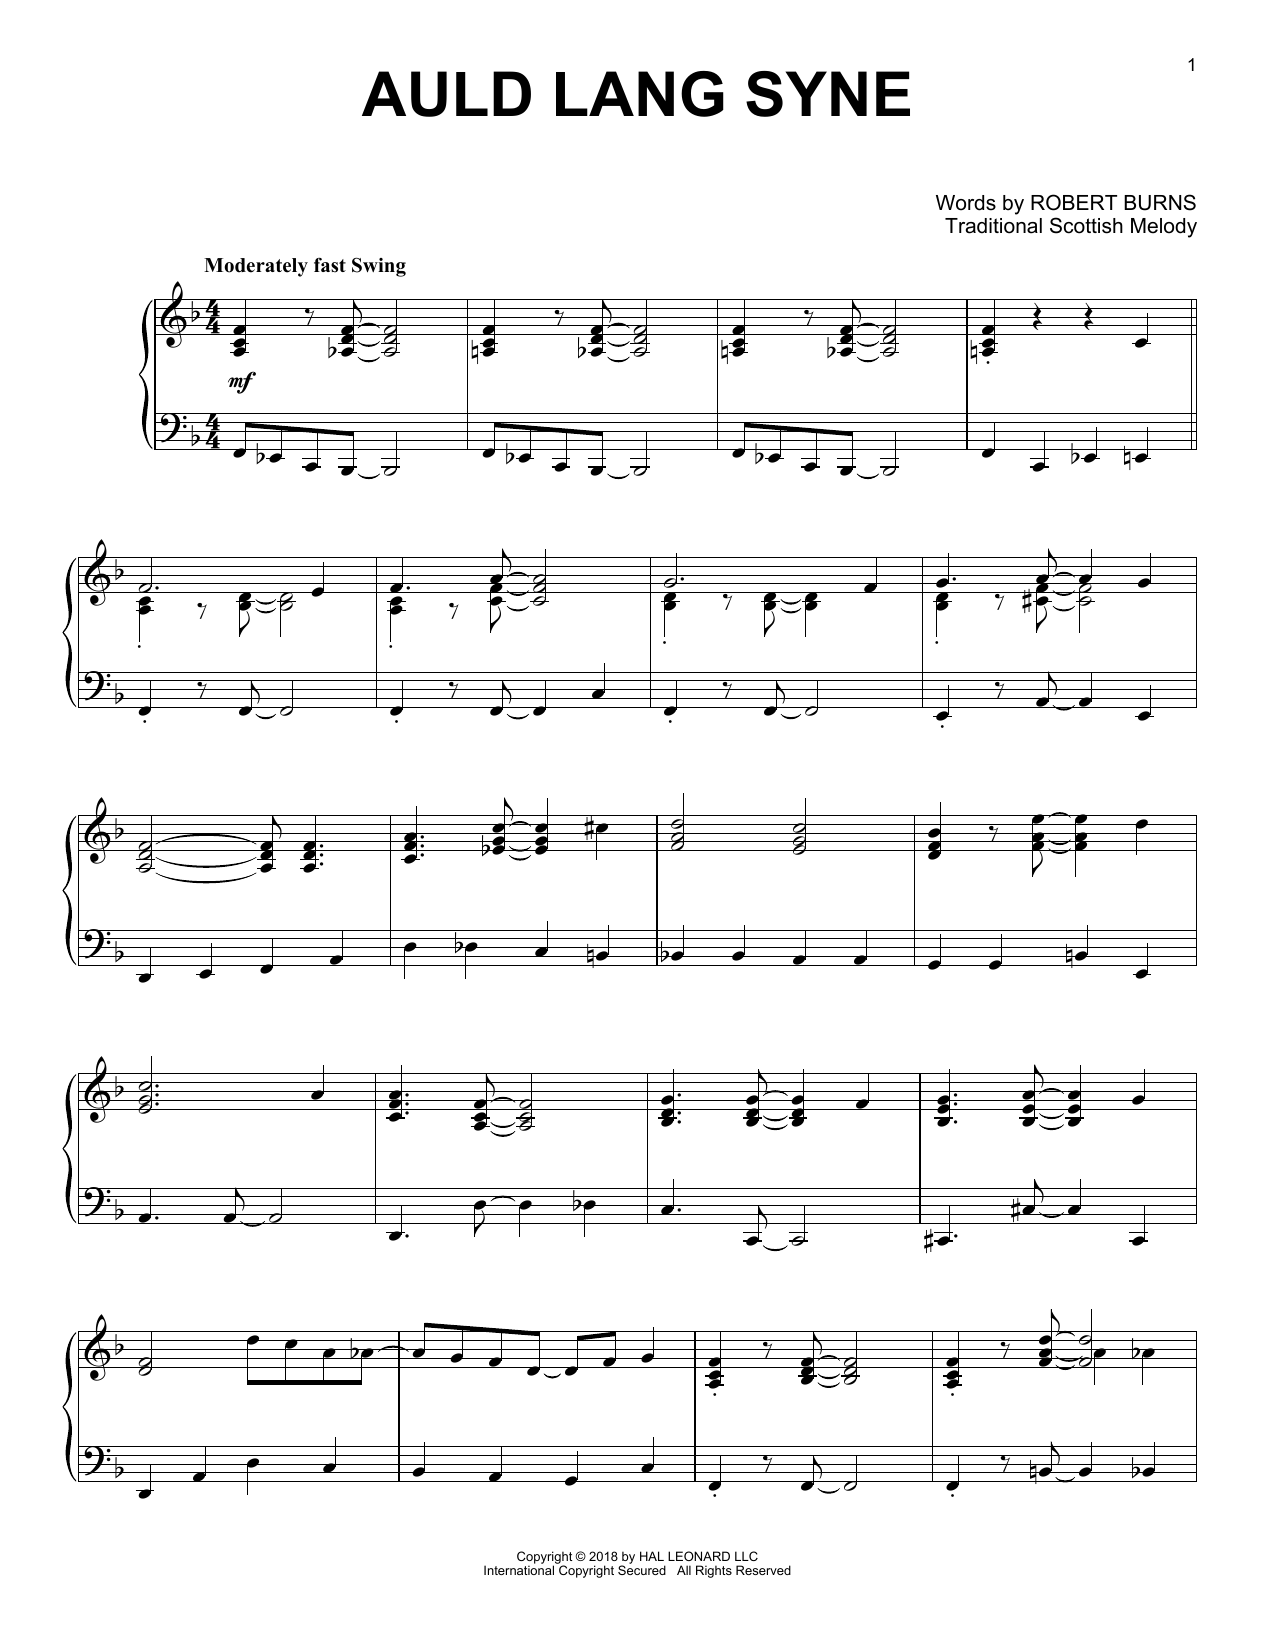 Robert Burns Auld Lang Syne [Jazz version] sheet music notes and chords. Download Printable PDF.